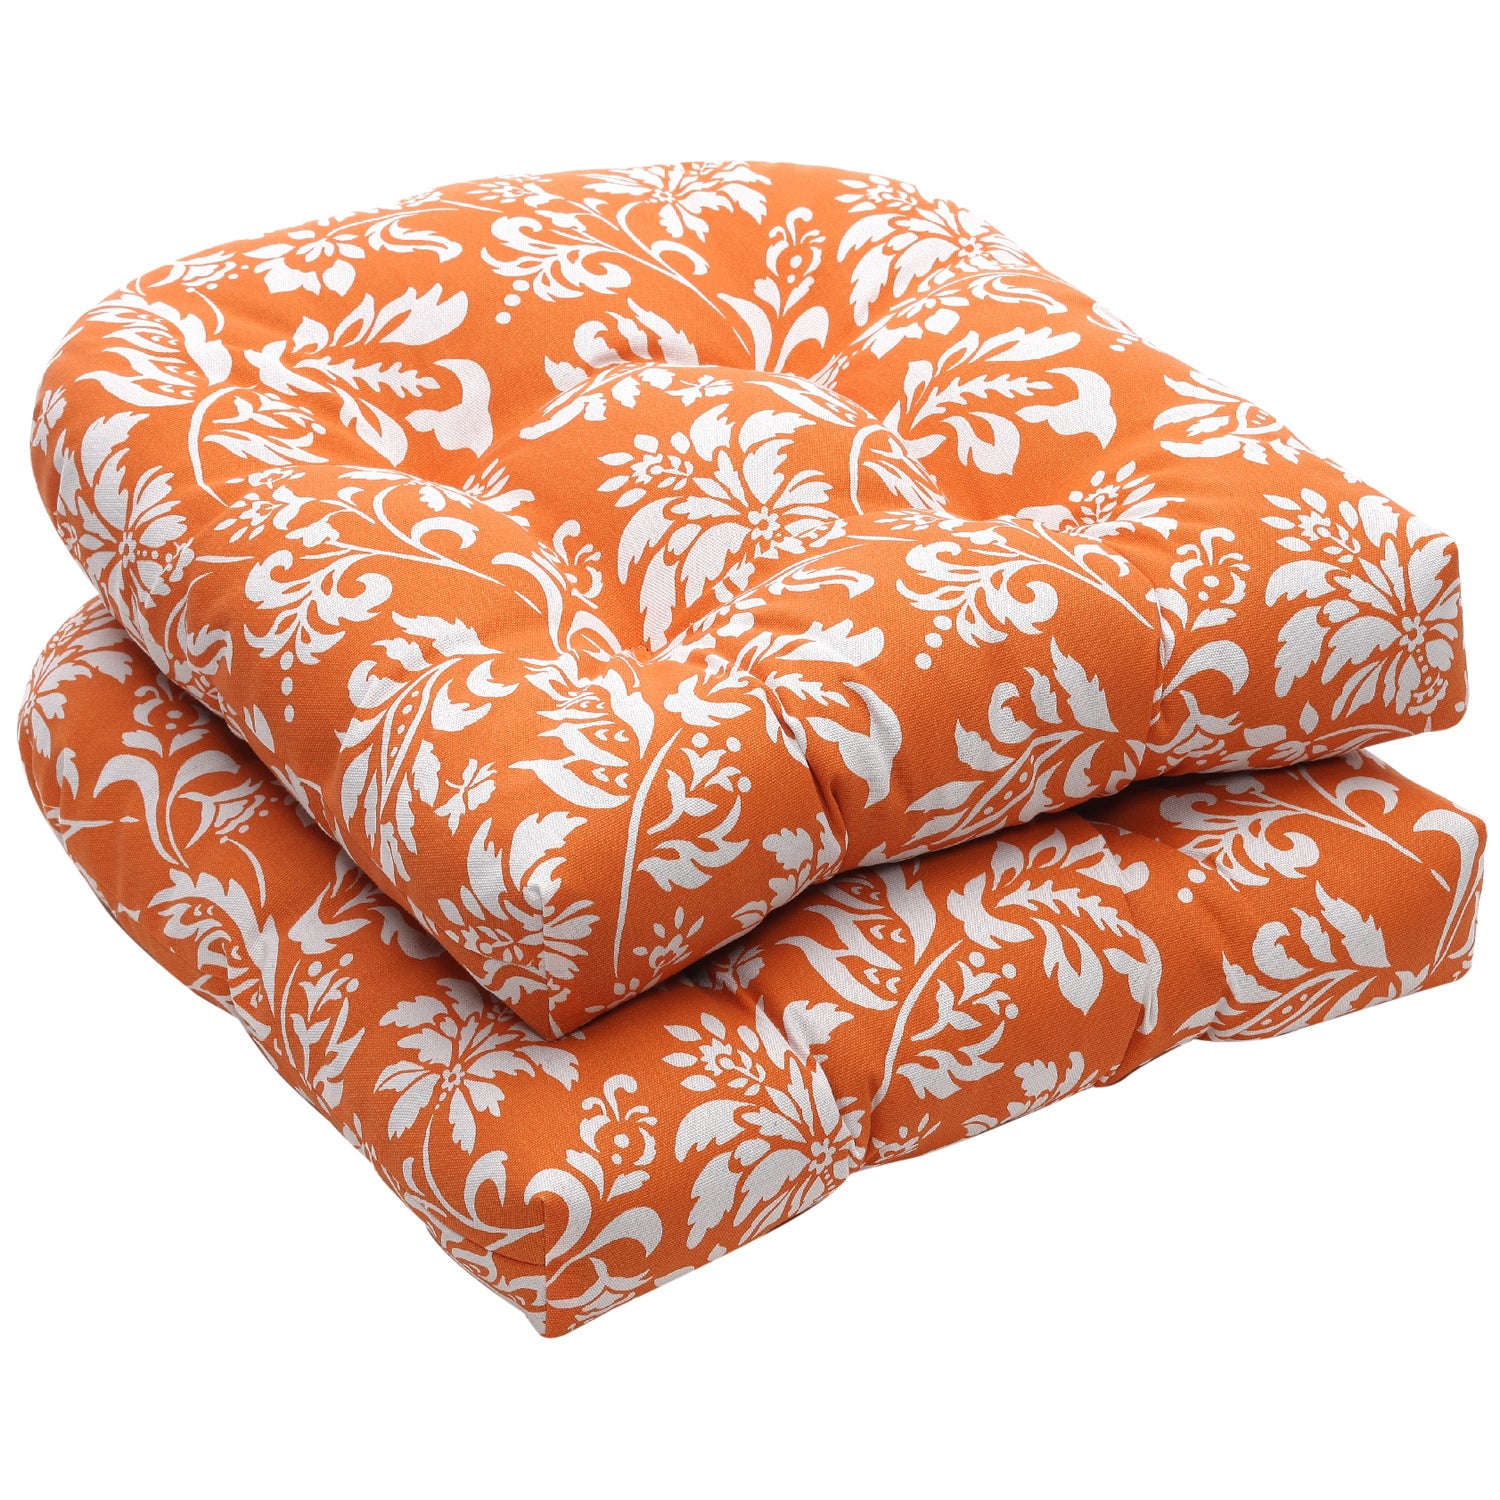 Pillow Perfect Outdoor Floral Orange/ White Wicker Seat Cushions (Set of 2)